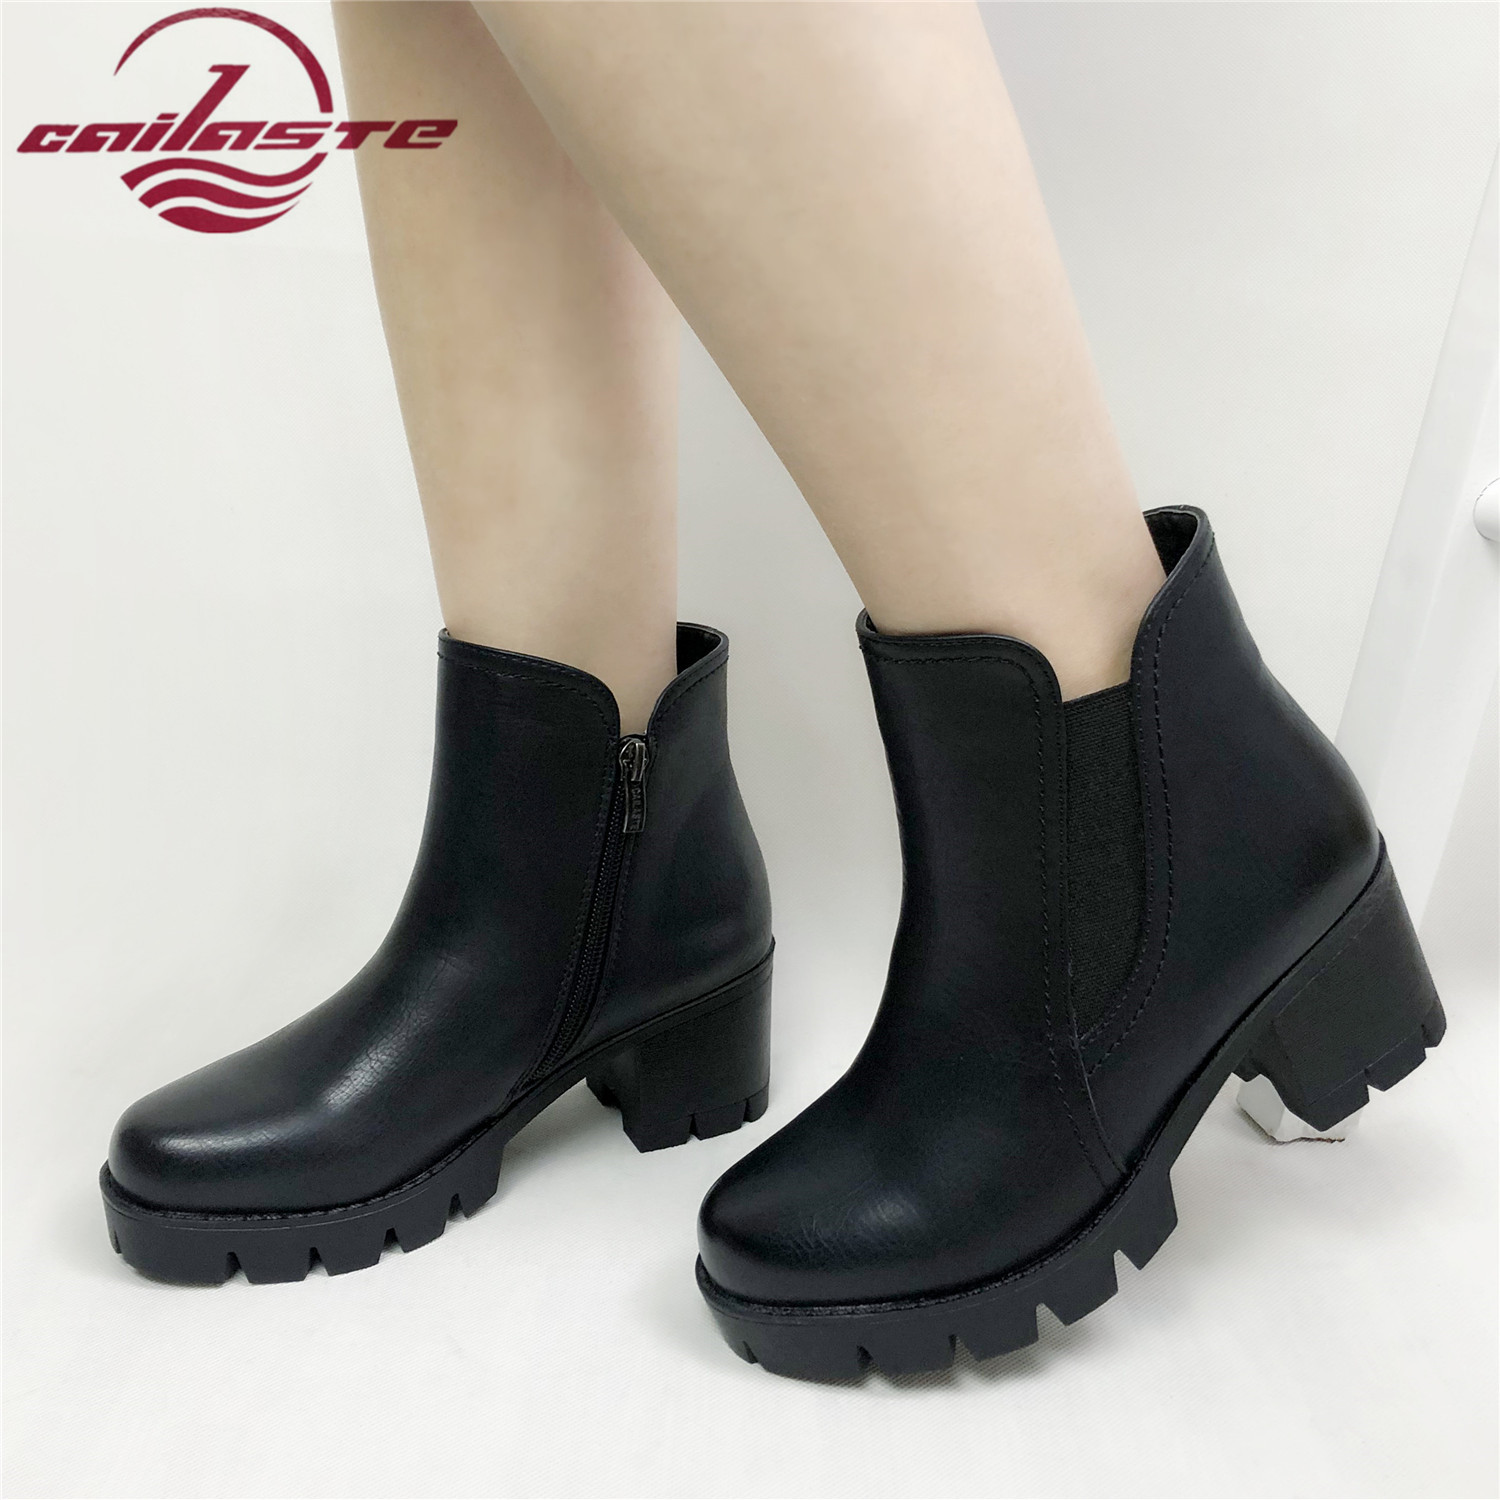 CAILASTE Platform thick high heel leather women shoes Autumn spring round toe Zipper ankle boots for ladies high quality basicCAILASTE Platform thick high heel leather women shoes Autumn spring round toe Zipper ankle boots for ladies high quality basic